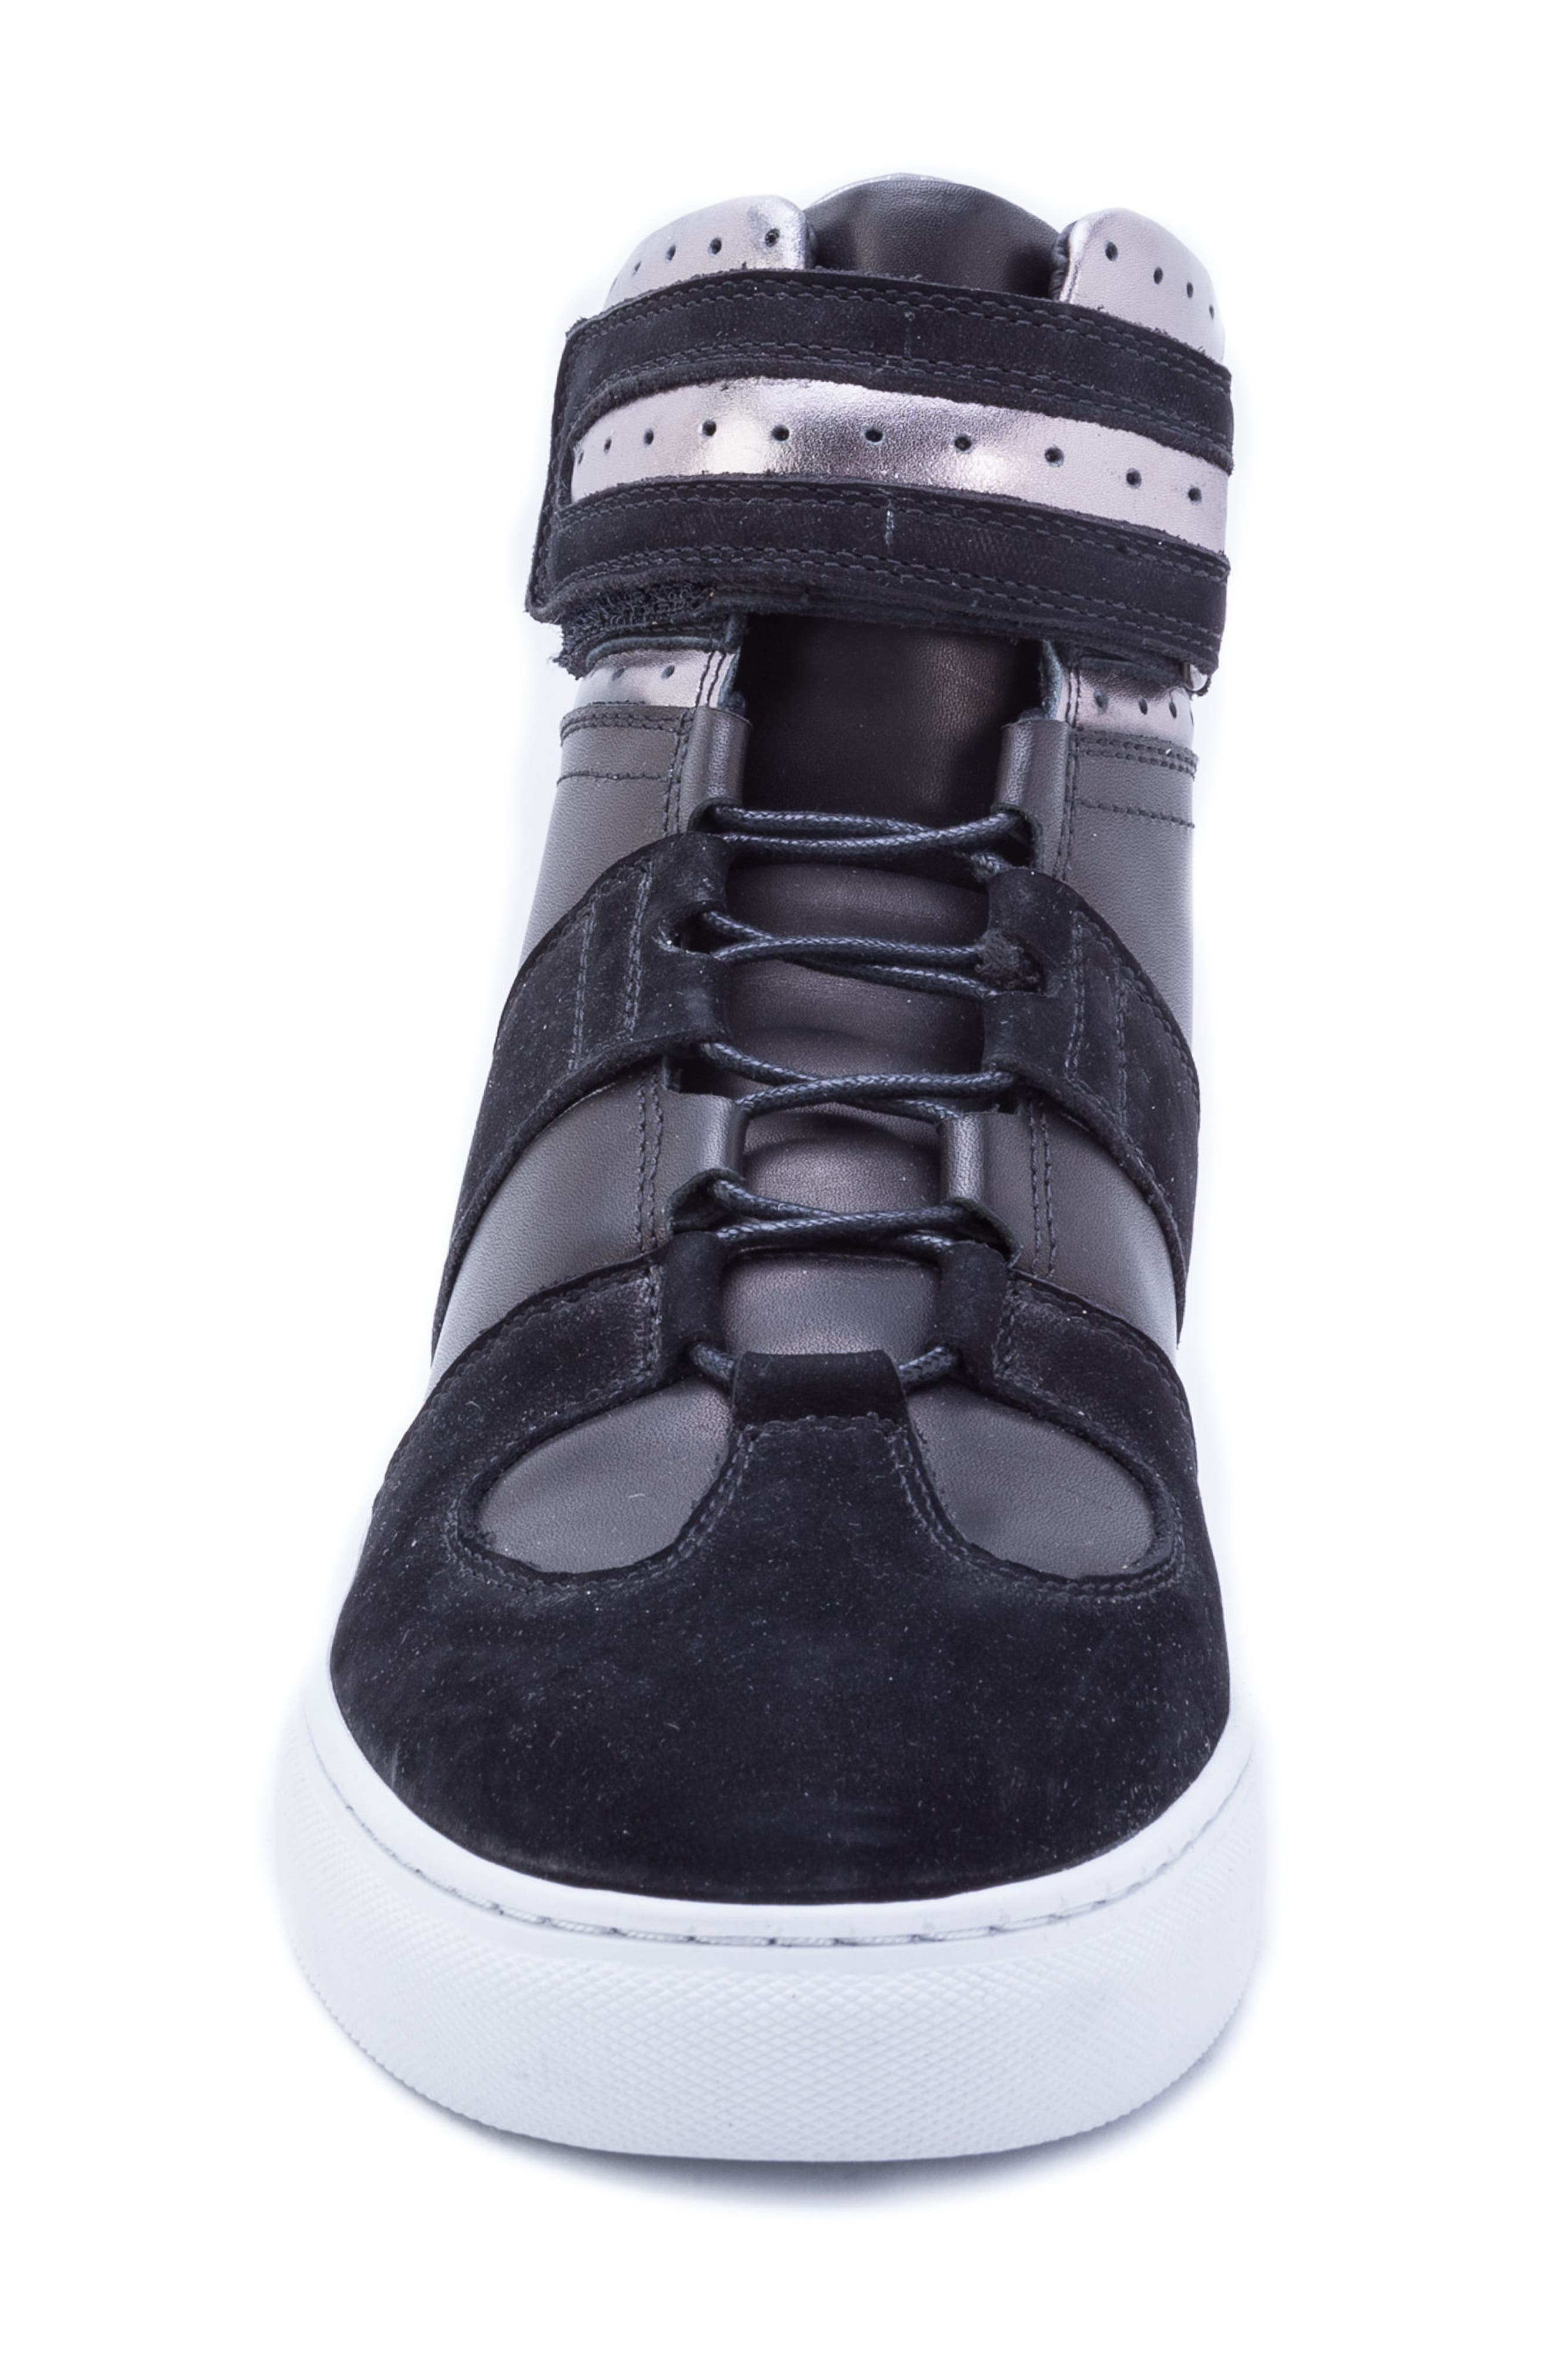 Belmondo High Top Sneaker,                             Alternate thumbnail 4, color,                             BLACK LEATHER/ SUEDE